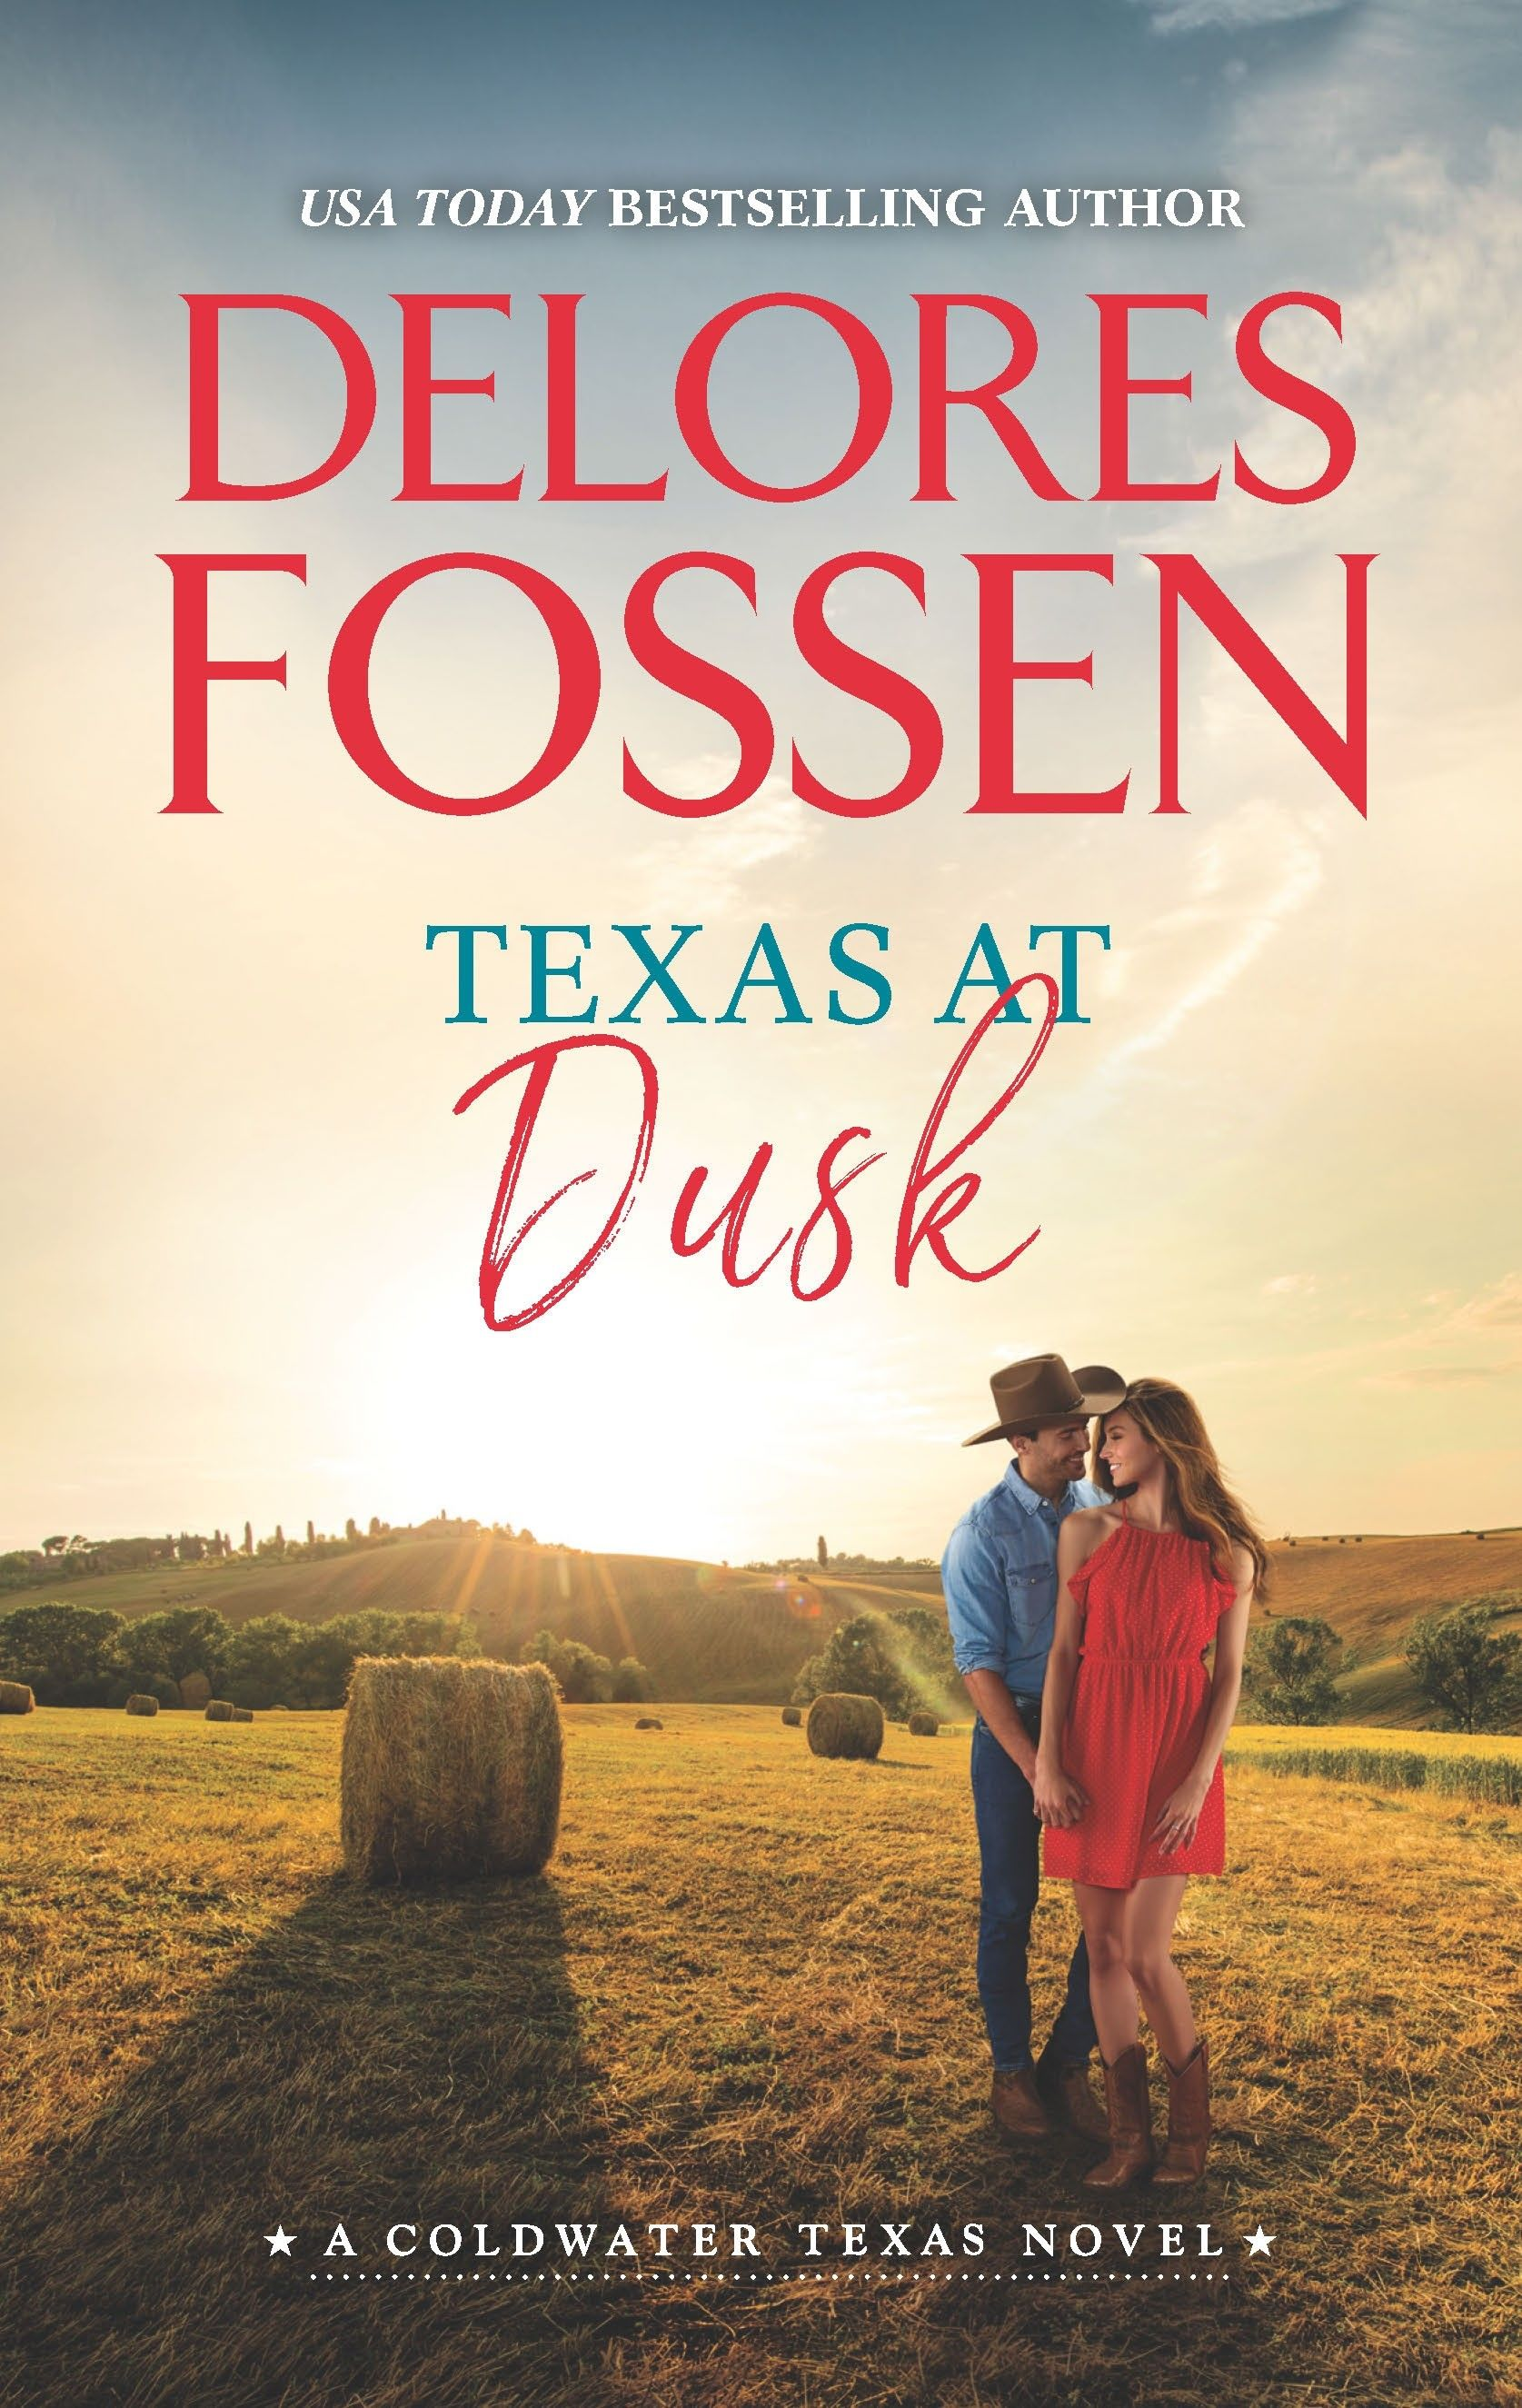 Texas at Dusk by Delores Fossen